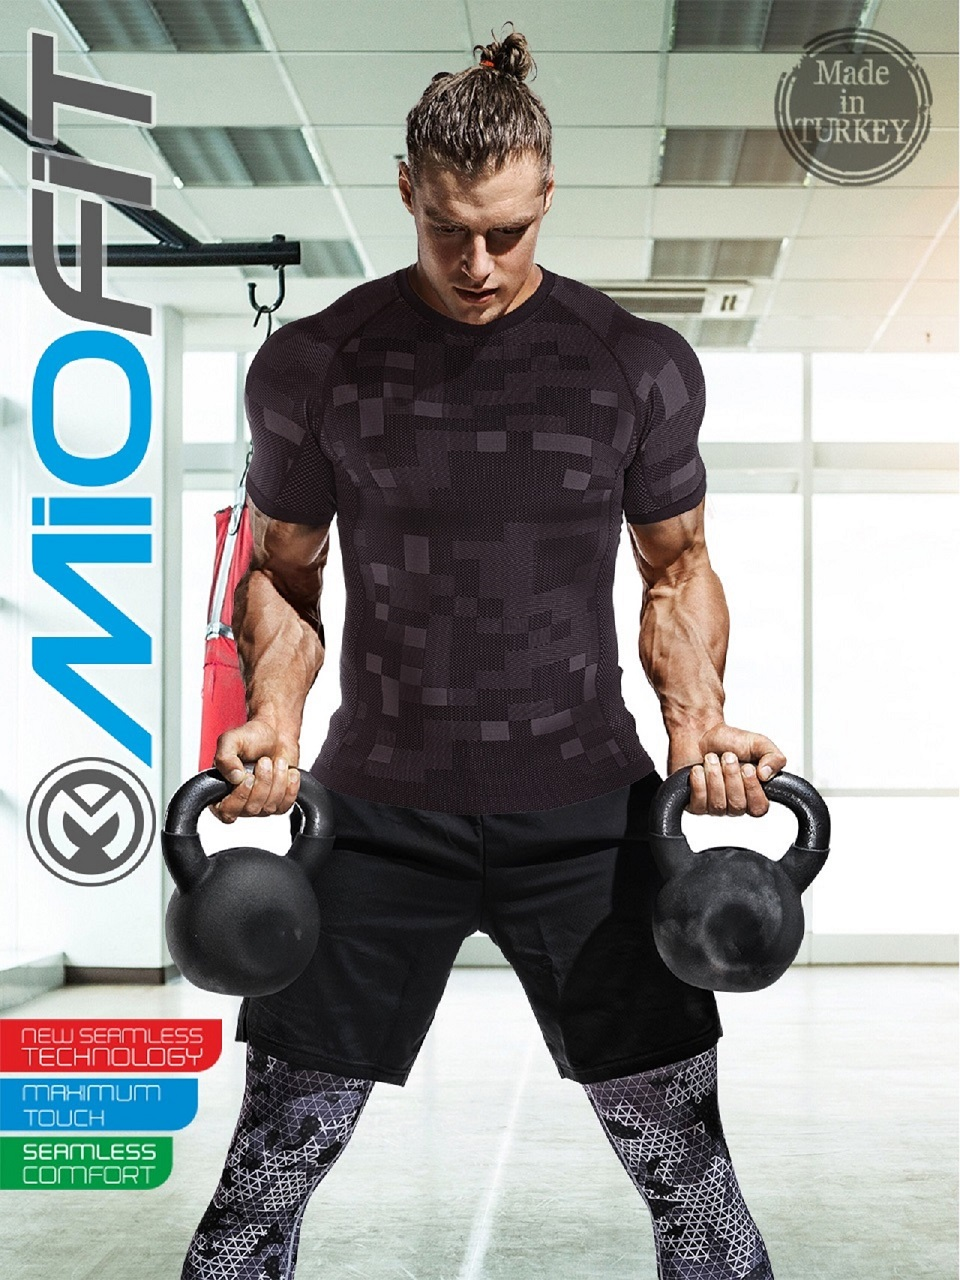 Seamless Fitness T-Shirt - Male Camouflage Tee - Men Sportswear Shirts For Traning Workout Gym And Running -Bodybuilding Tees